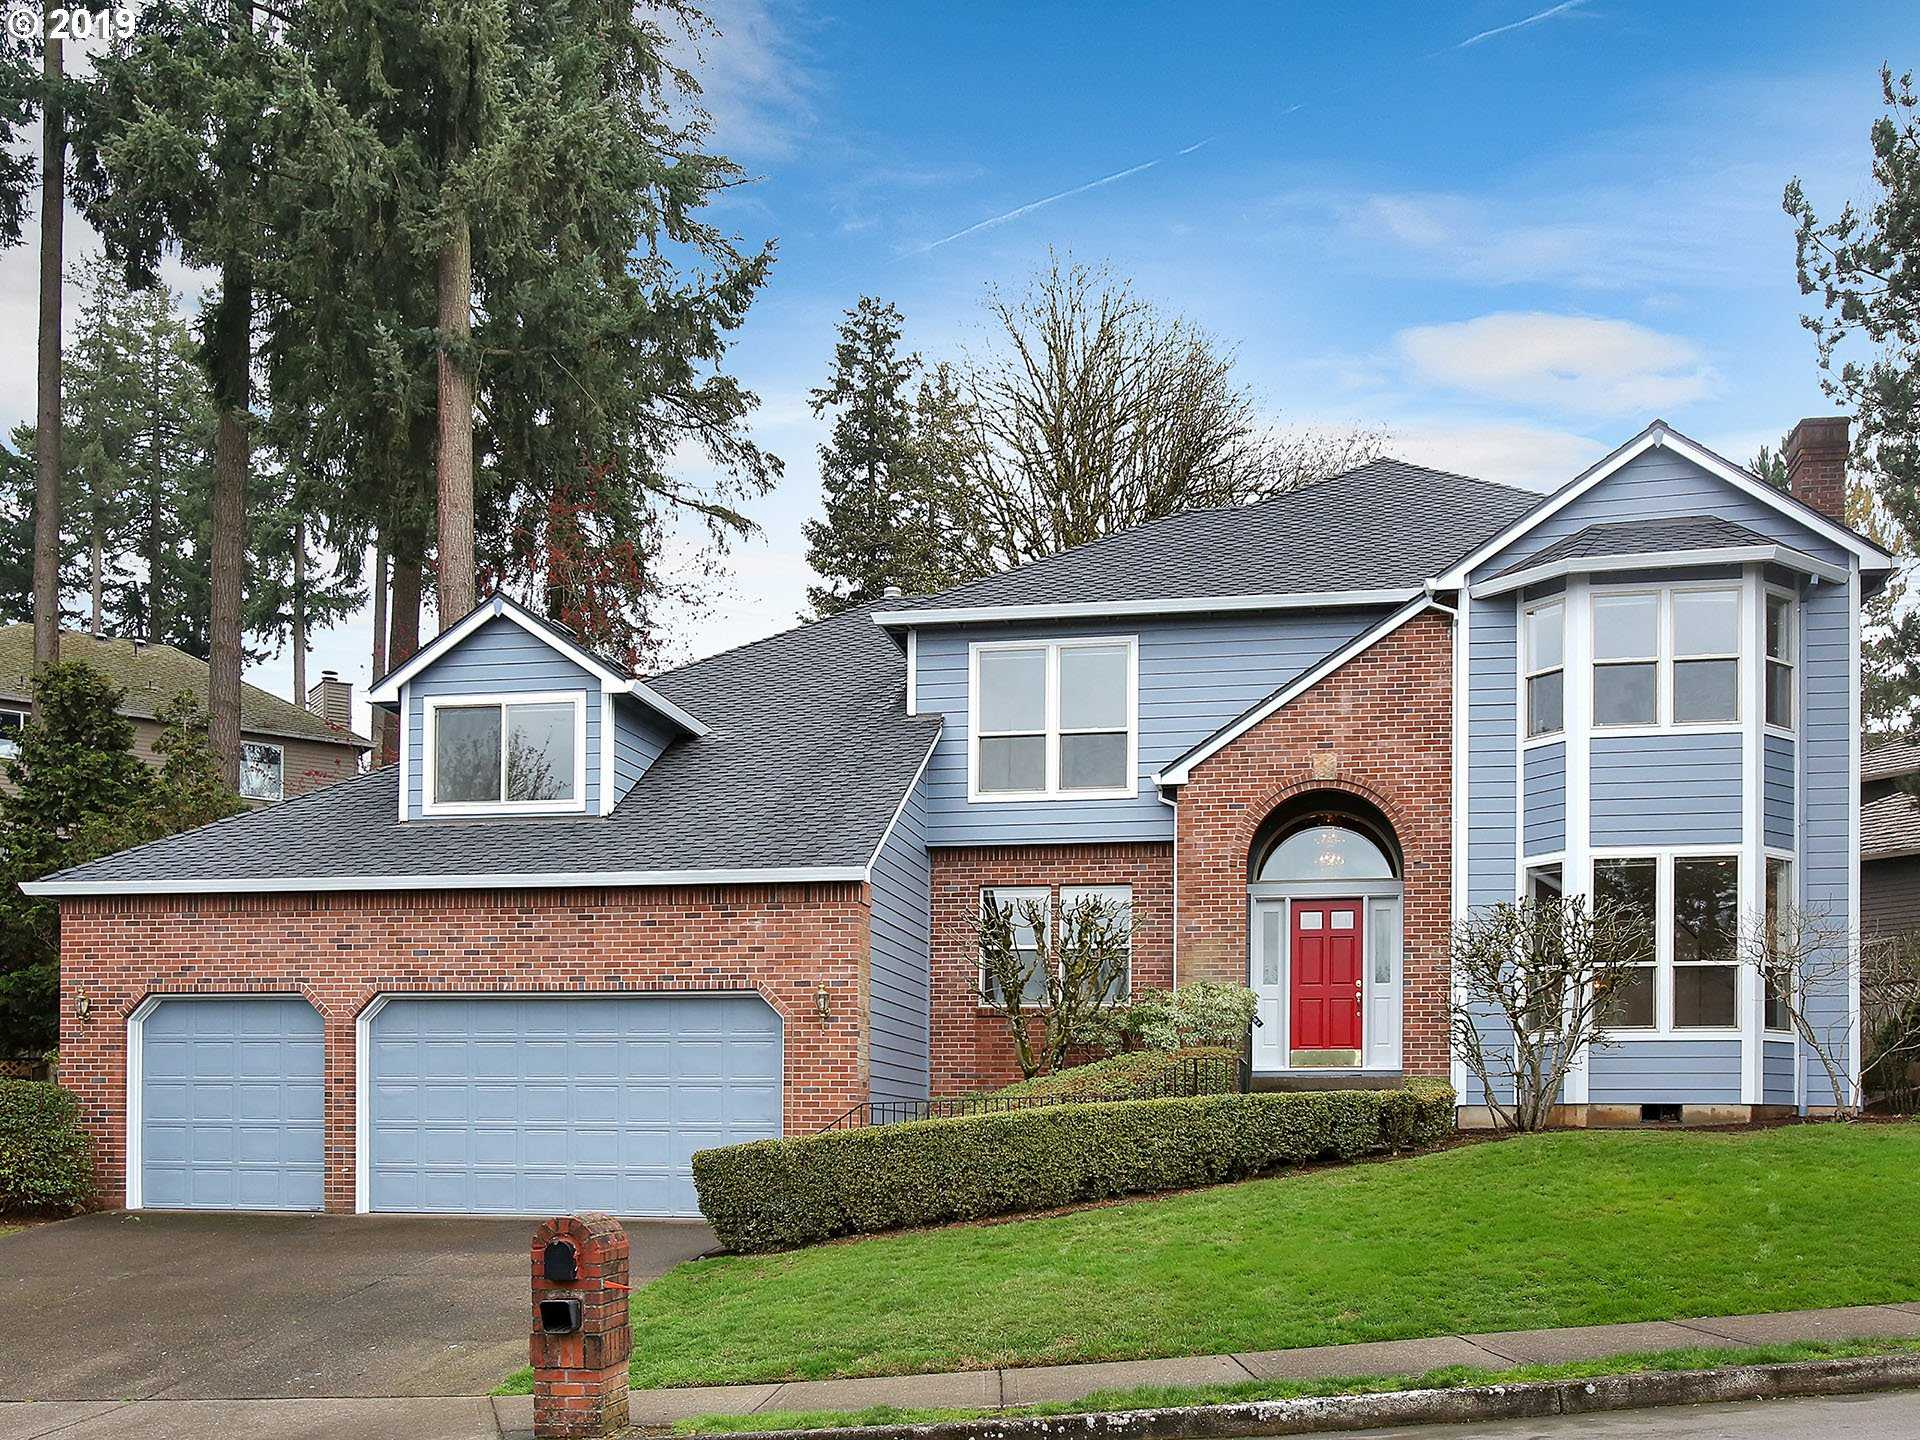 $625,000 - 4Br/3Ba -  for Sale in West Linn